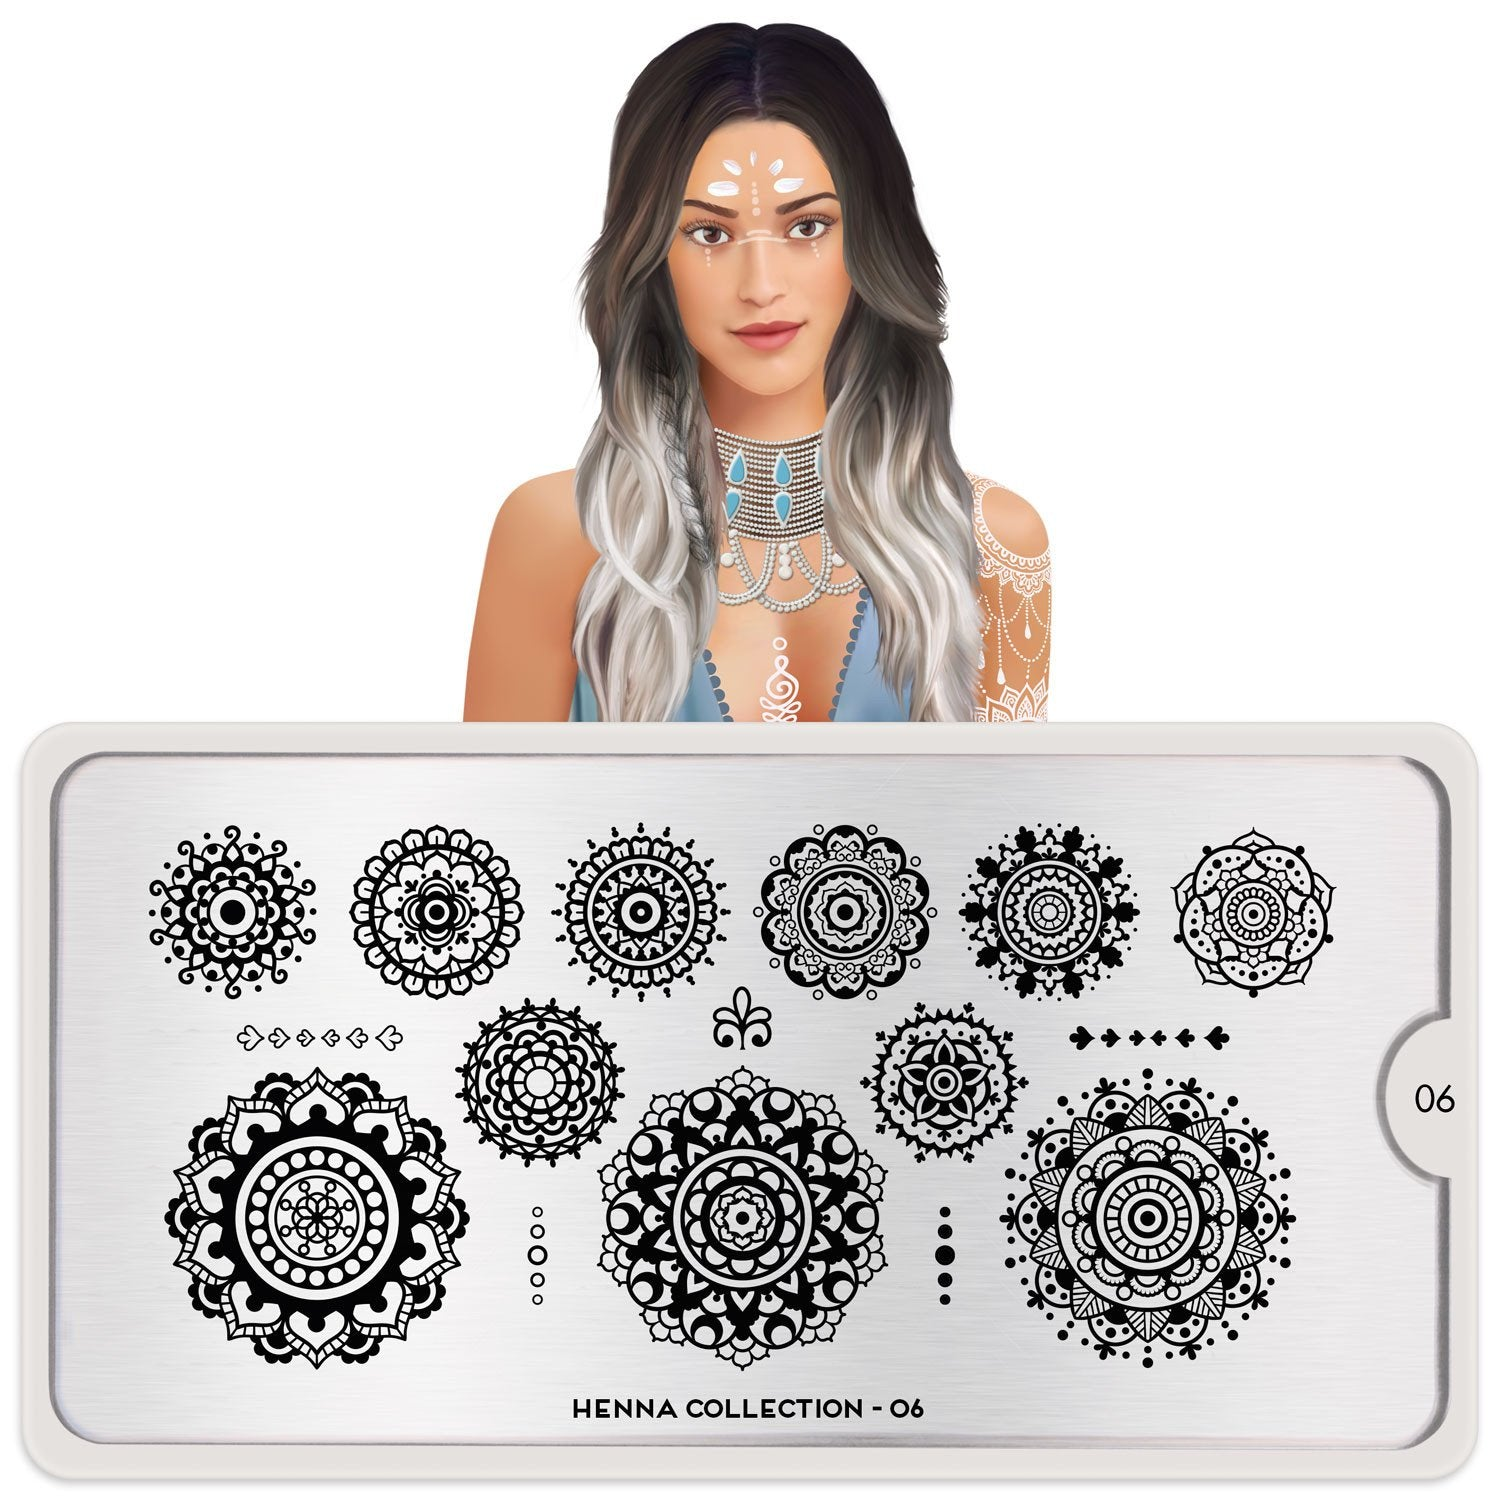 MoYou London Henna 06 stamping plate